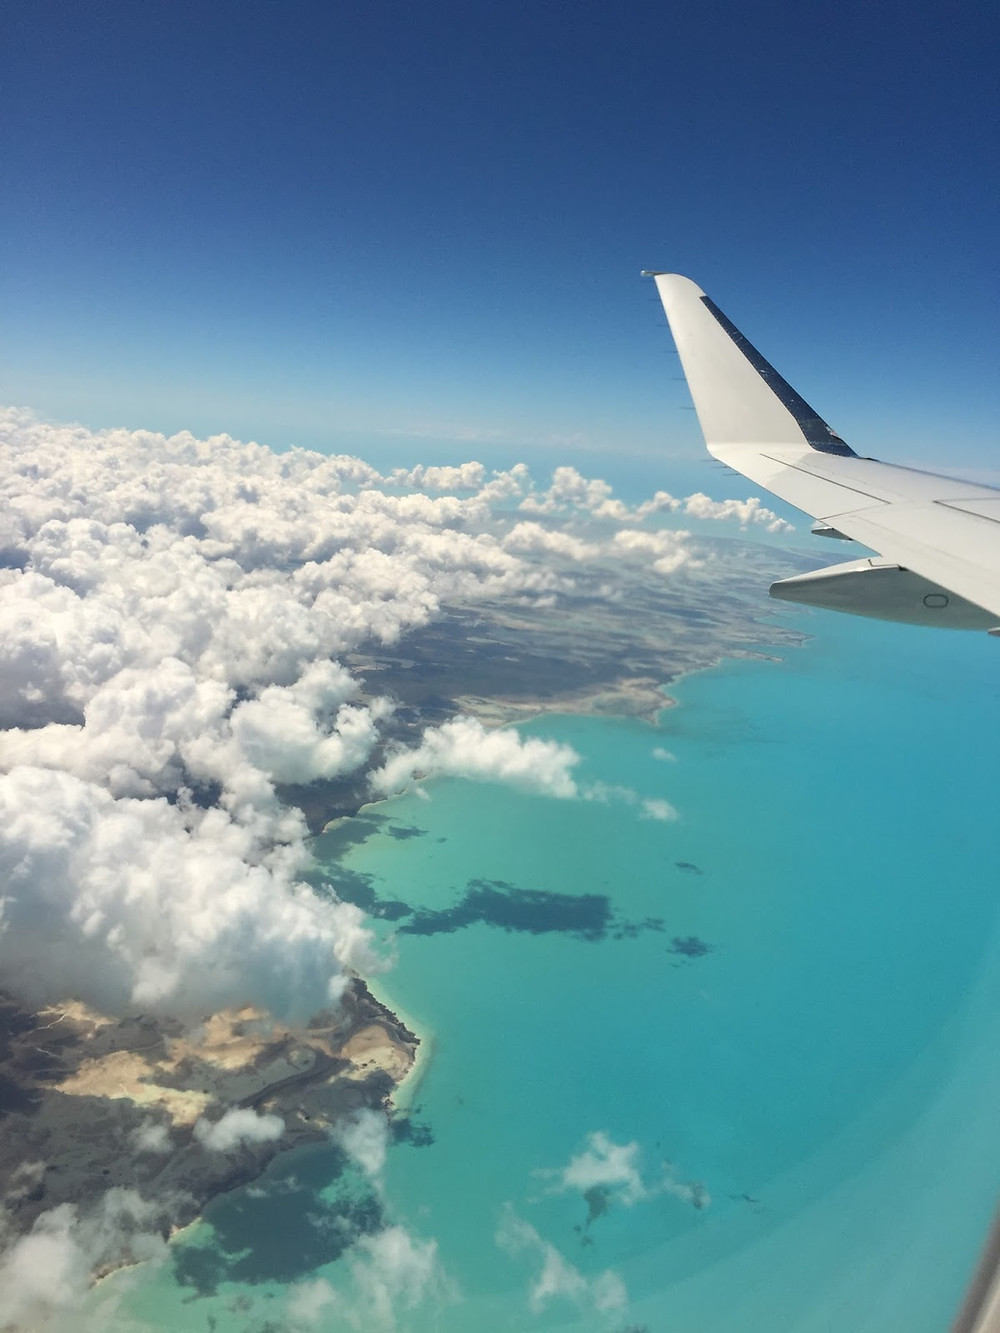 tail of an airplane flying over white cotton clouds and turquoise ocean